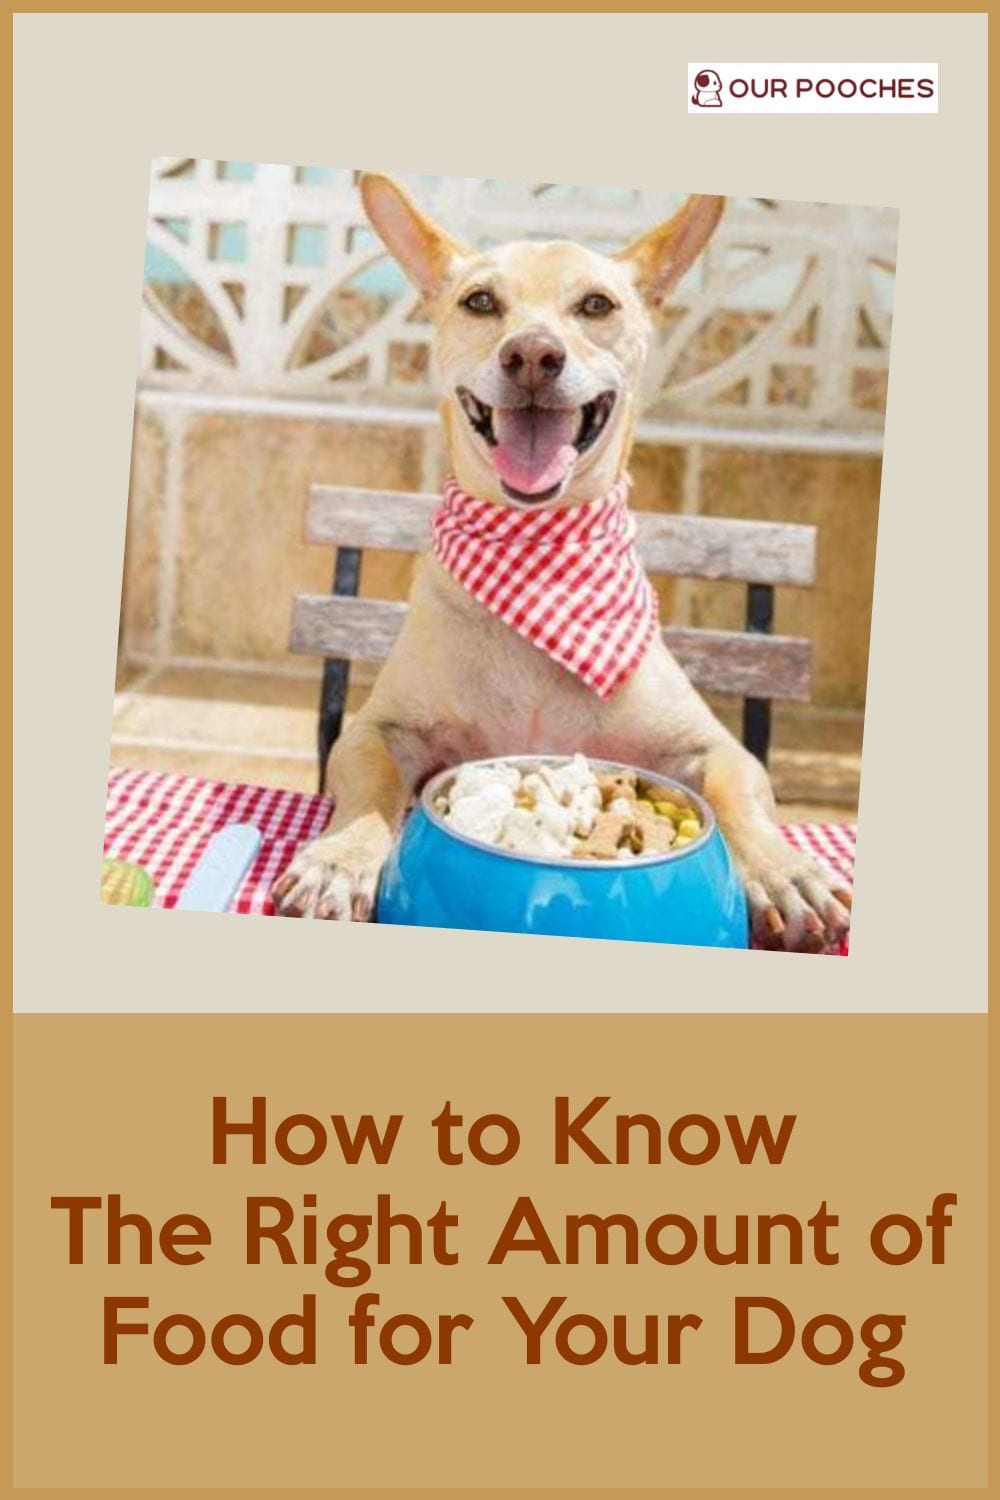 How to know the right amount of food for your dog